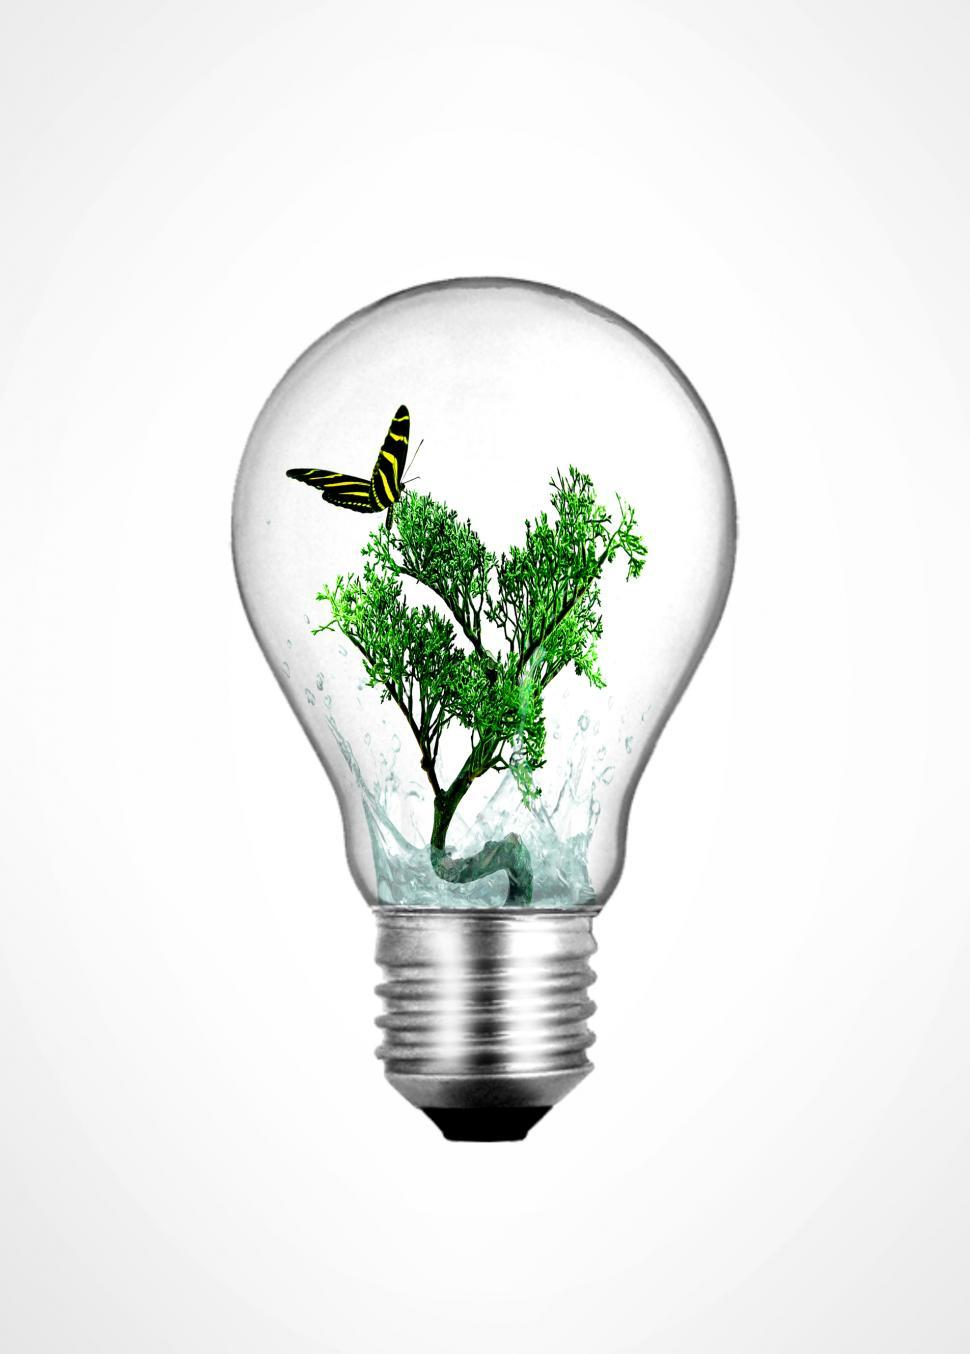 Download Free Stock HD Photo of Lightbulb with bonsai plant and butterfly inside - Ecology and e Online